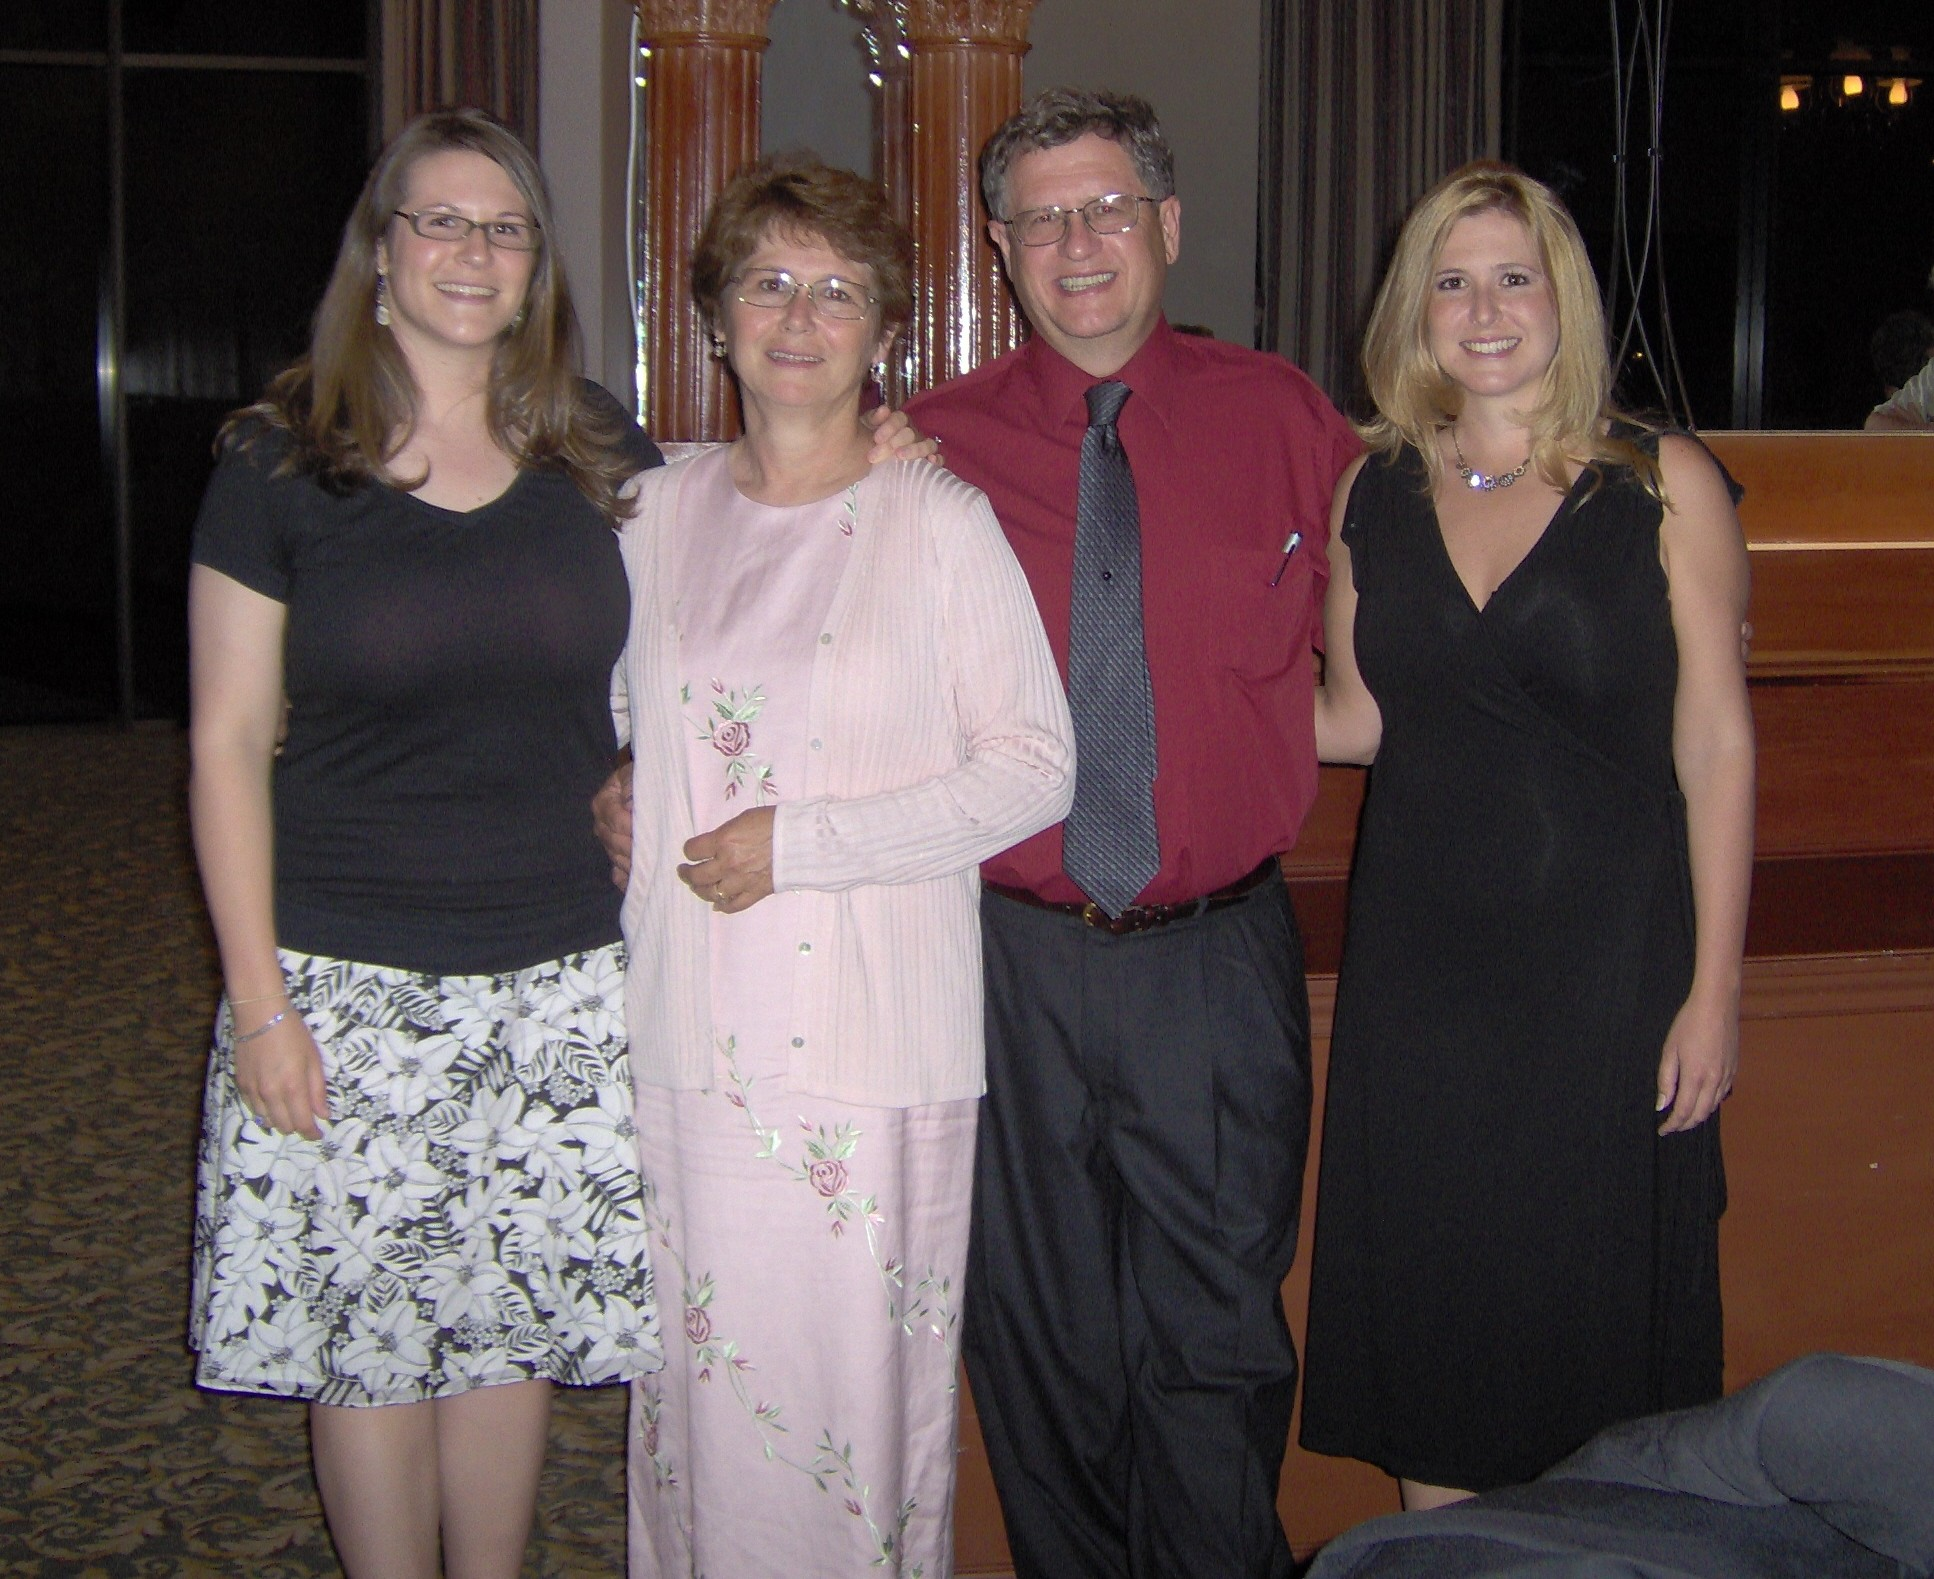 2007 OFHS meeting in Charlottesville, VA - The Douglas Owsley family